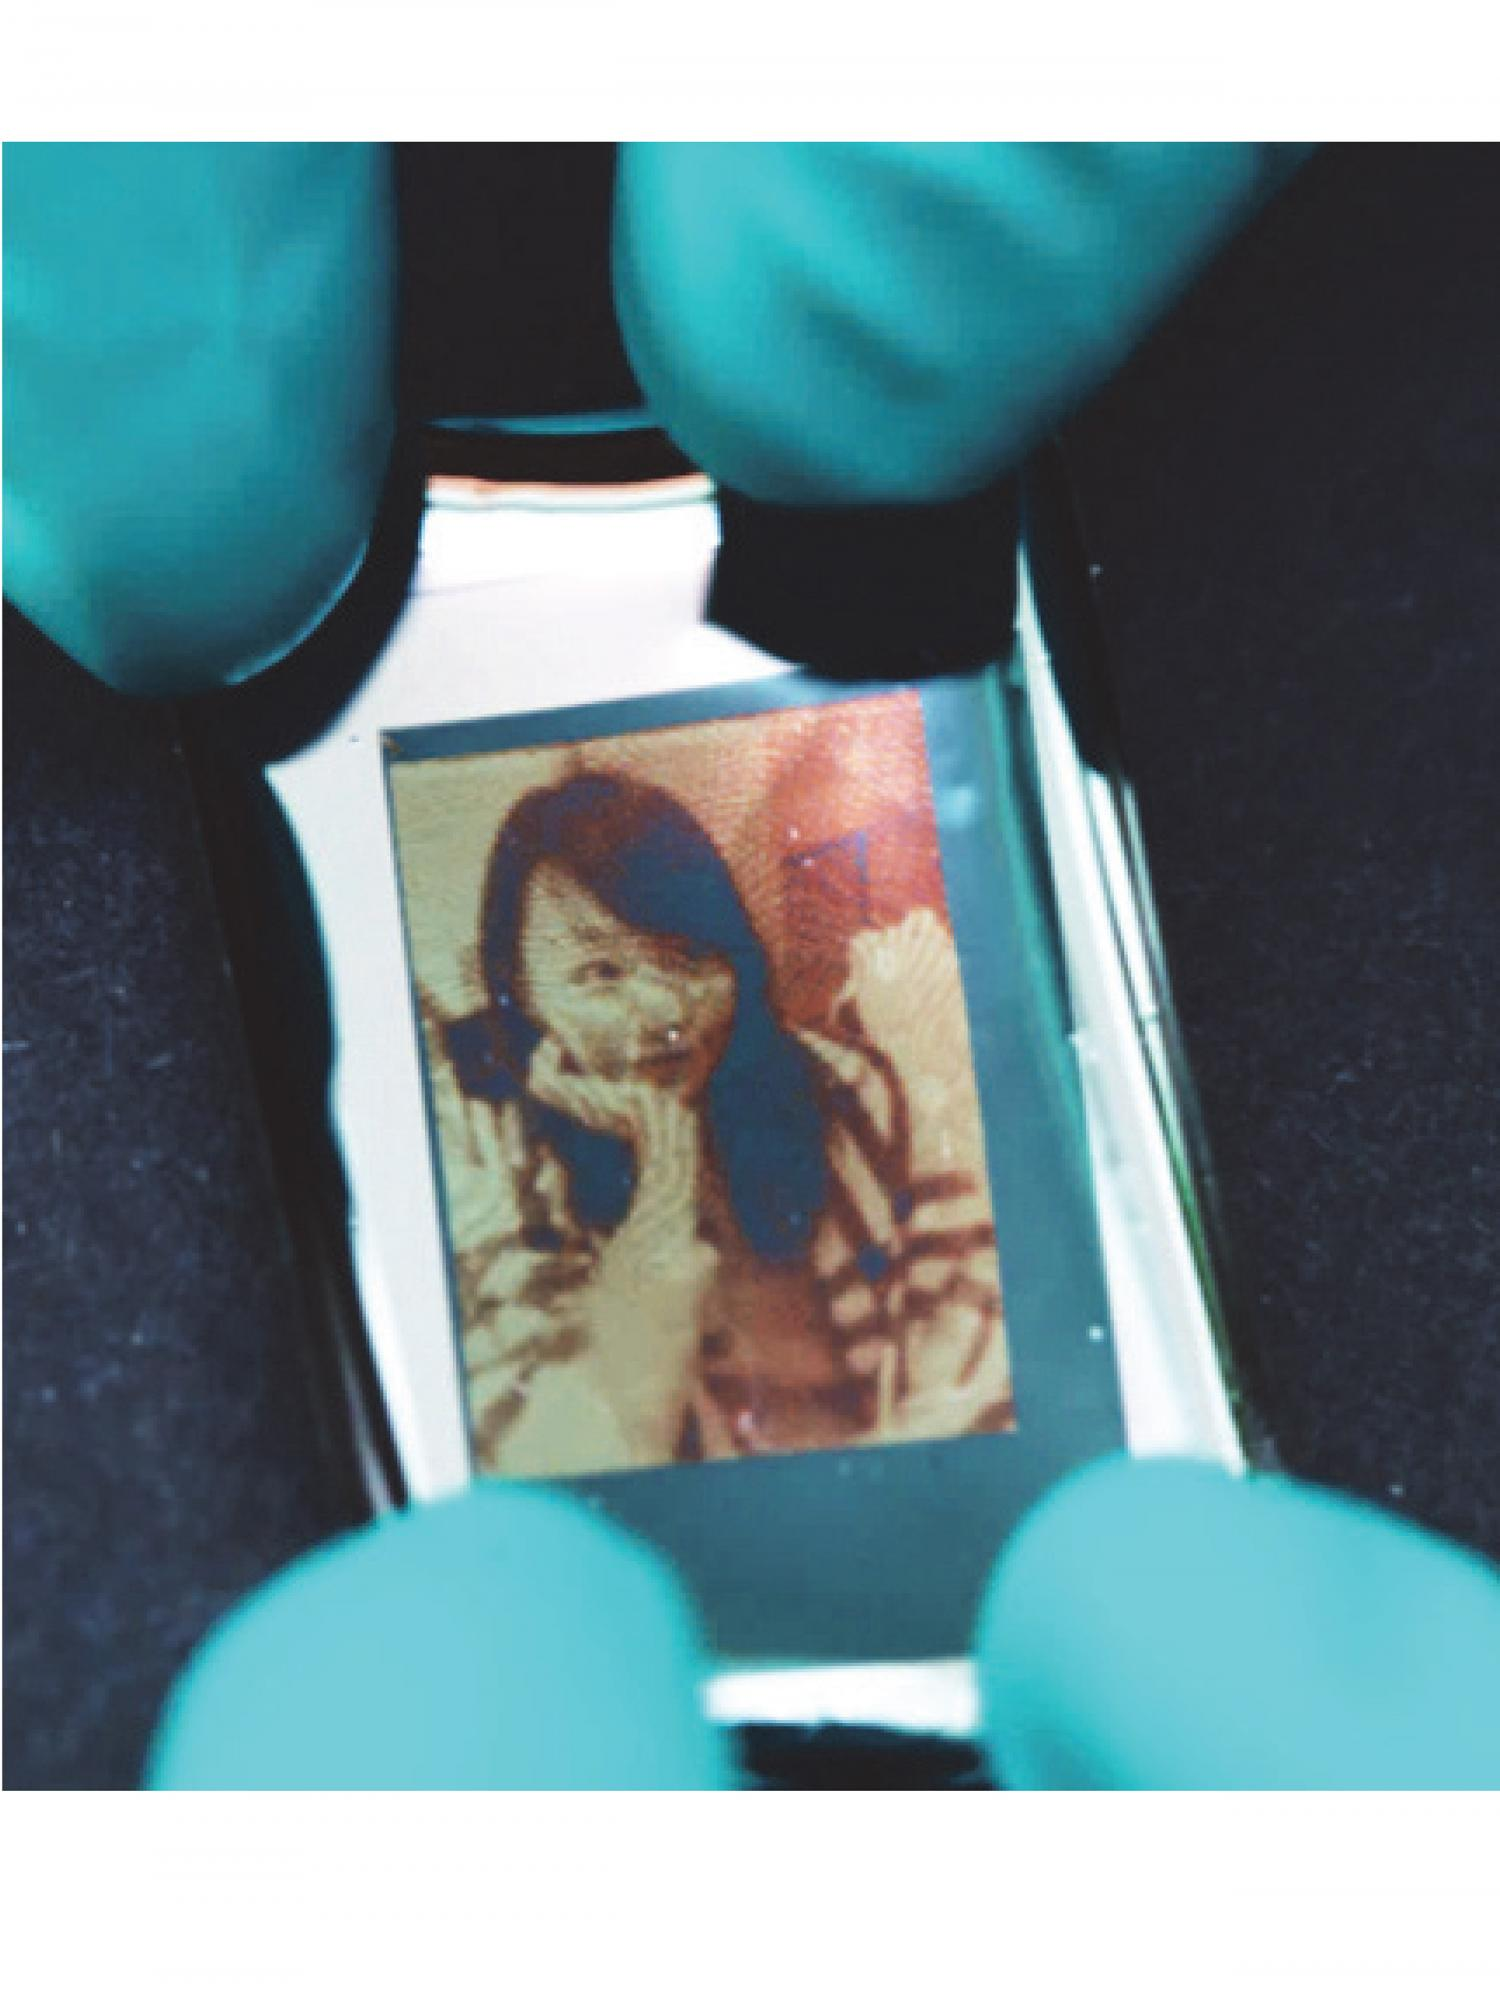 Structural Color Laser Printing Of A Photo Demonstrating That Highly Saturated Cyan Magenta And Yellow CMY Combination Successfully Leads To